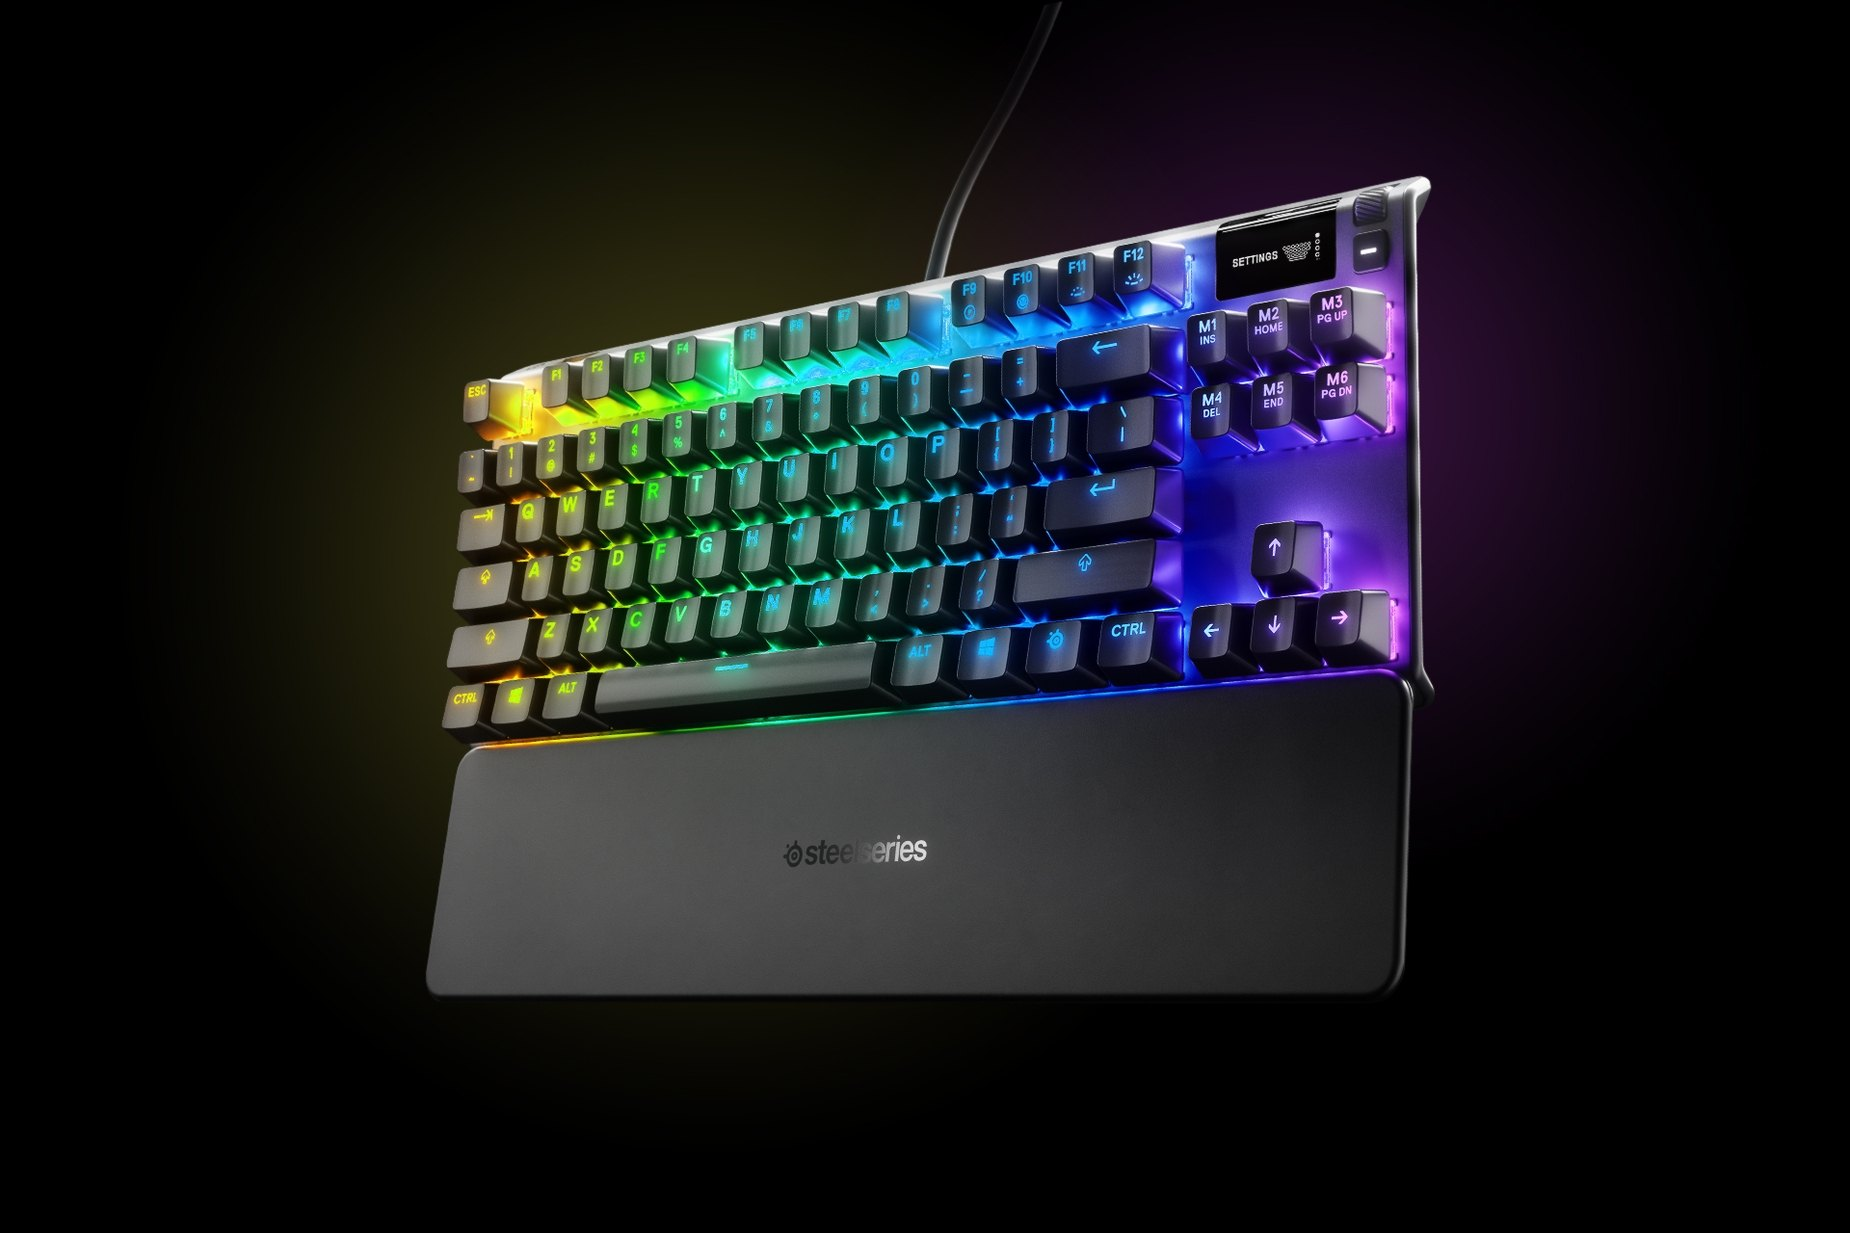 UK İngilizce - Apex 7 TKL (Kırmızı Anahtar) gaming keyboard with the illumination lit up on dark background, also shows the OLED screen and controls used to change settings and adjust audio